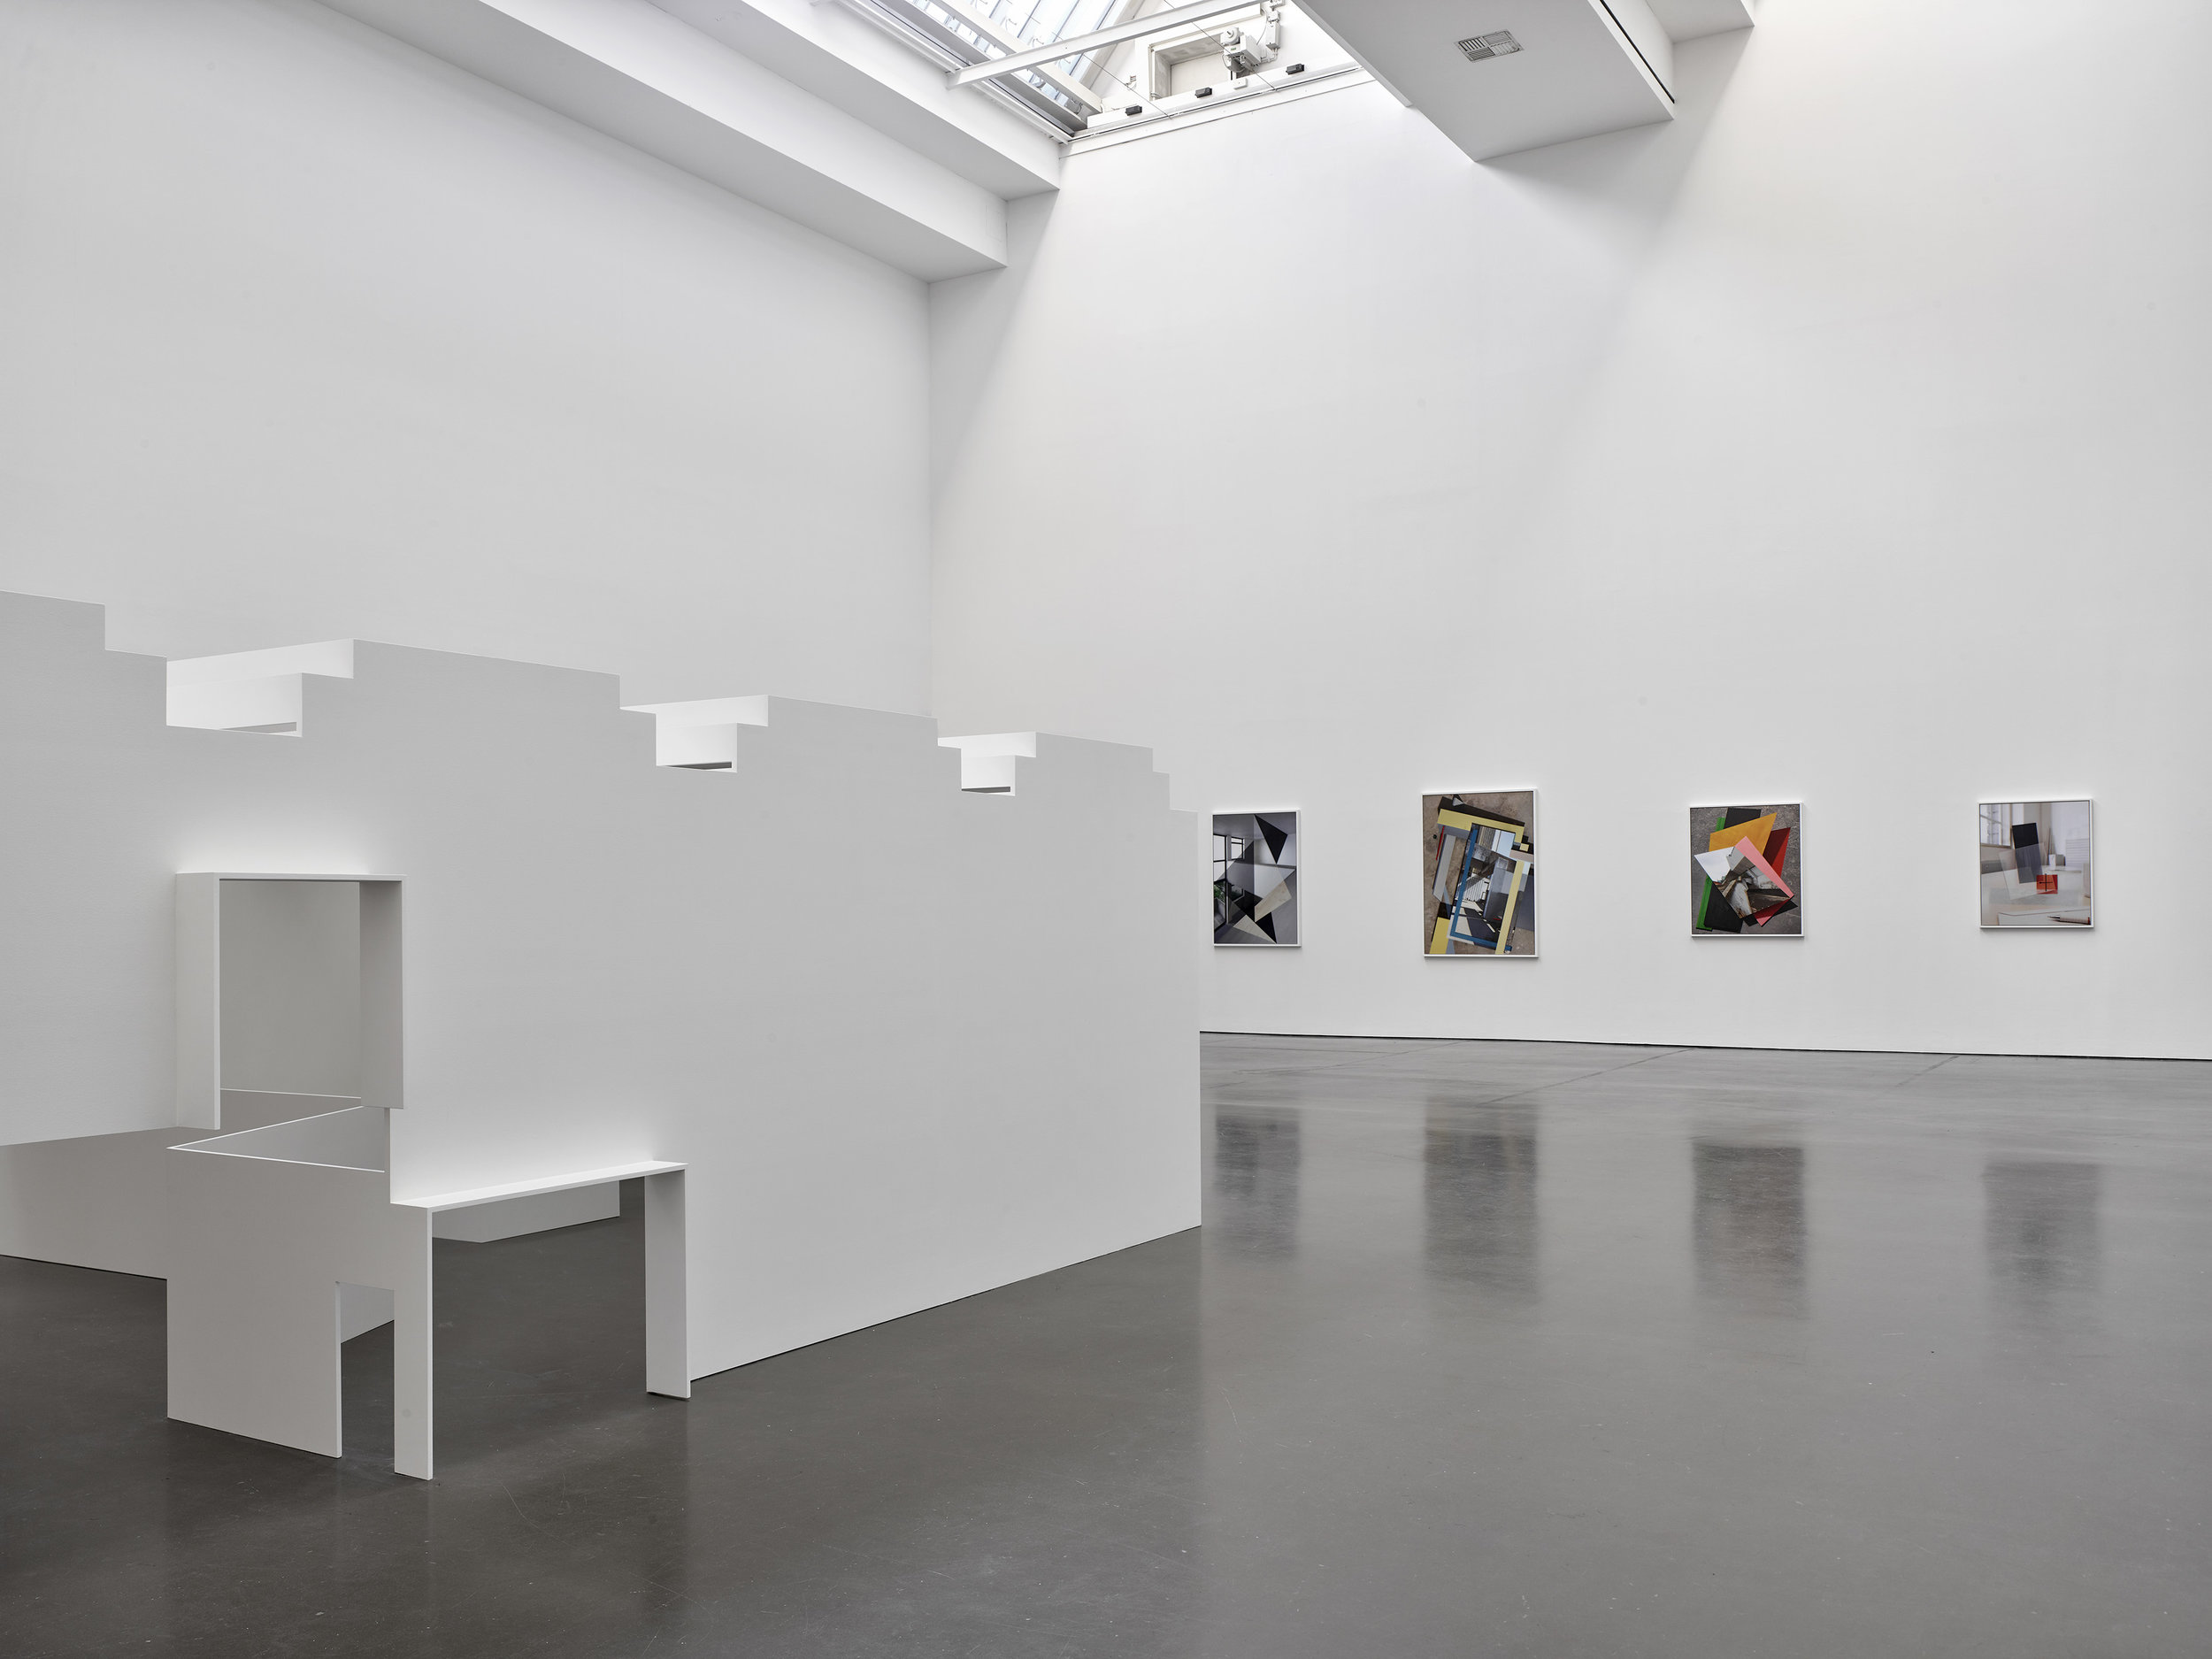 replica, 2019, installation view Kunsthalle Düsseldorf, Photo: Achim Kukulies